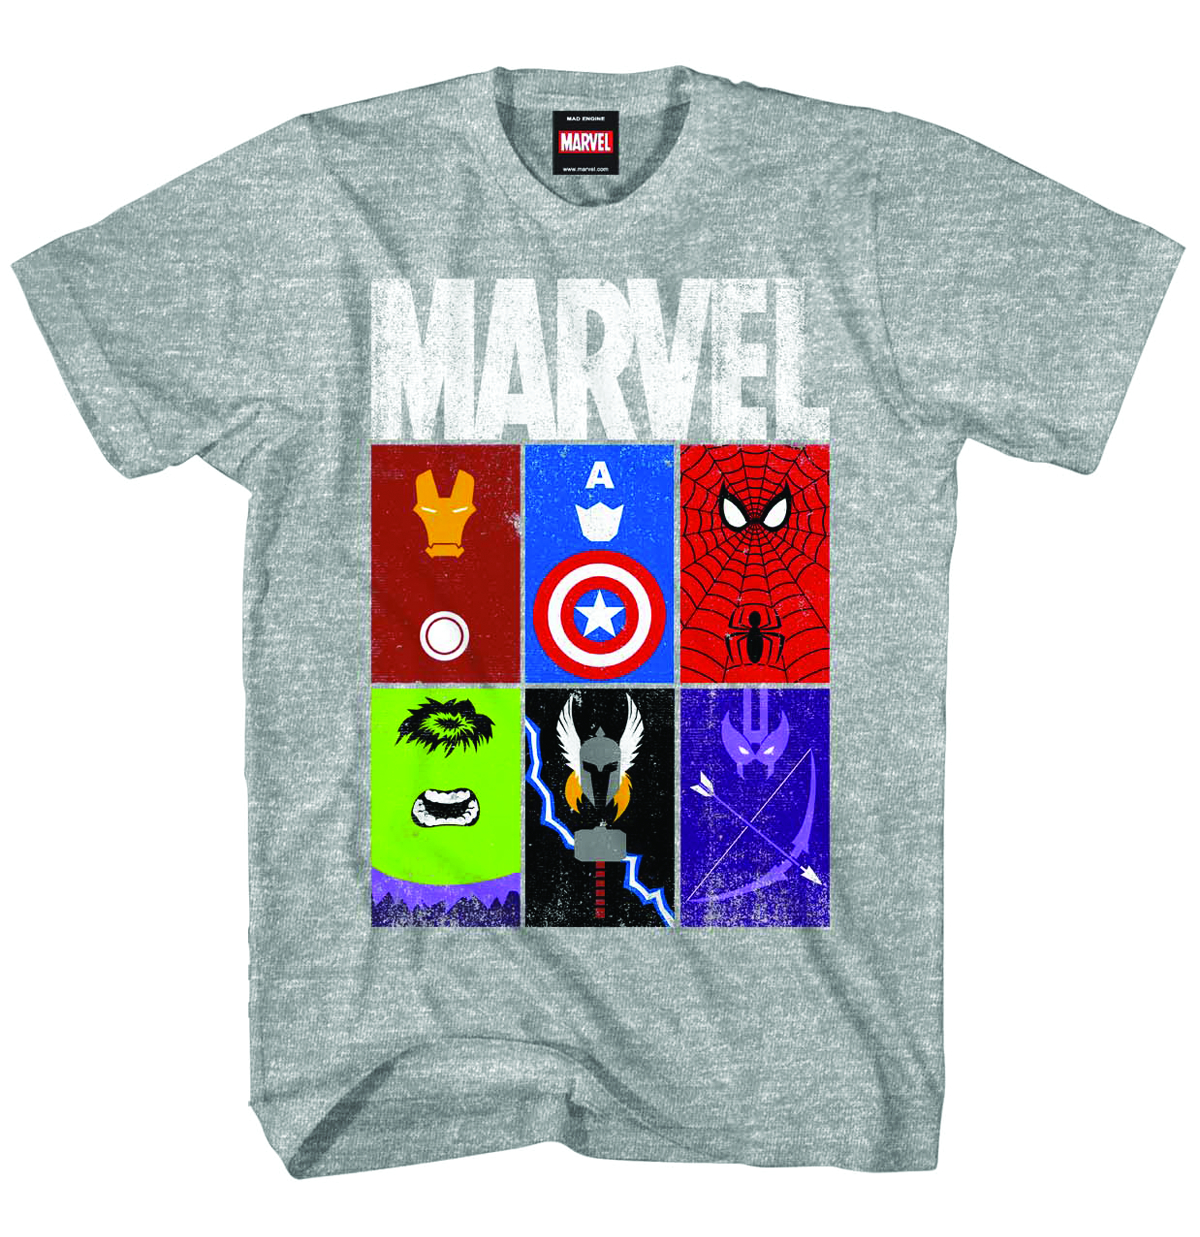 MARVEL HEROES MARVELBLOCKS HEATHER T/S MED